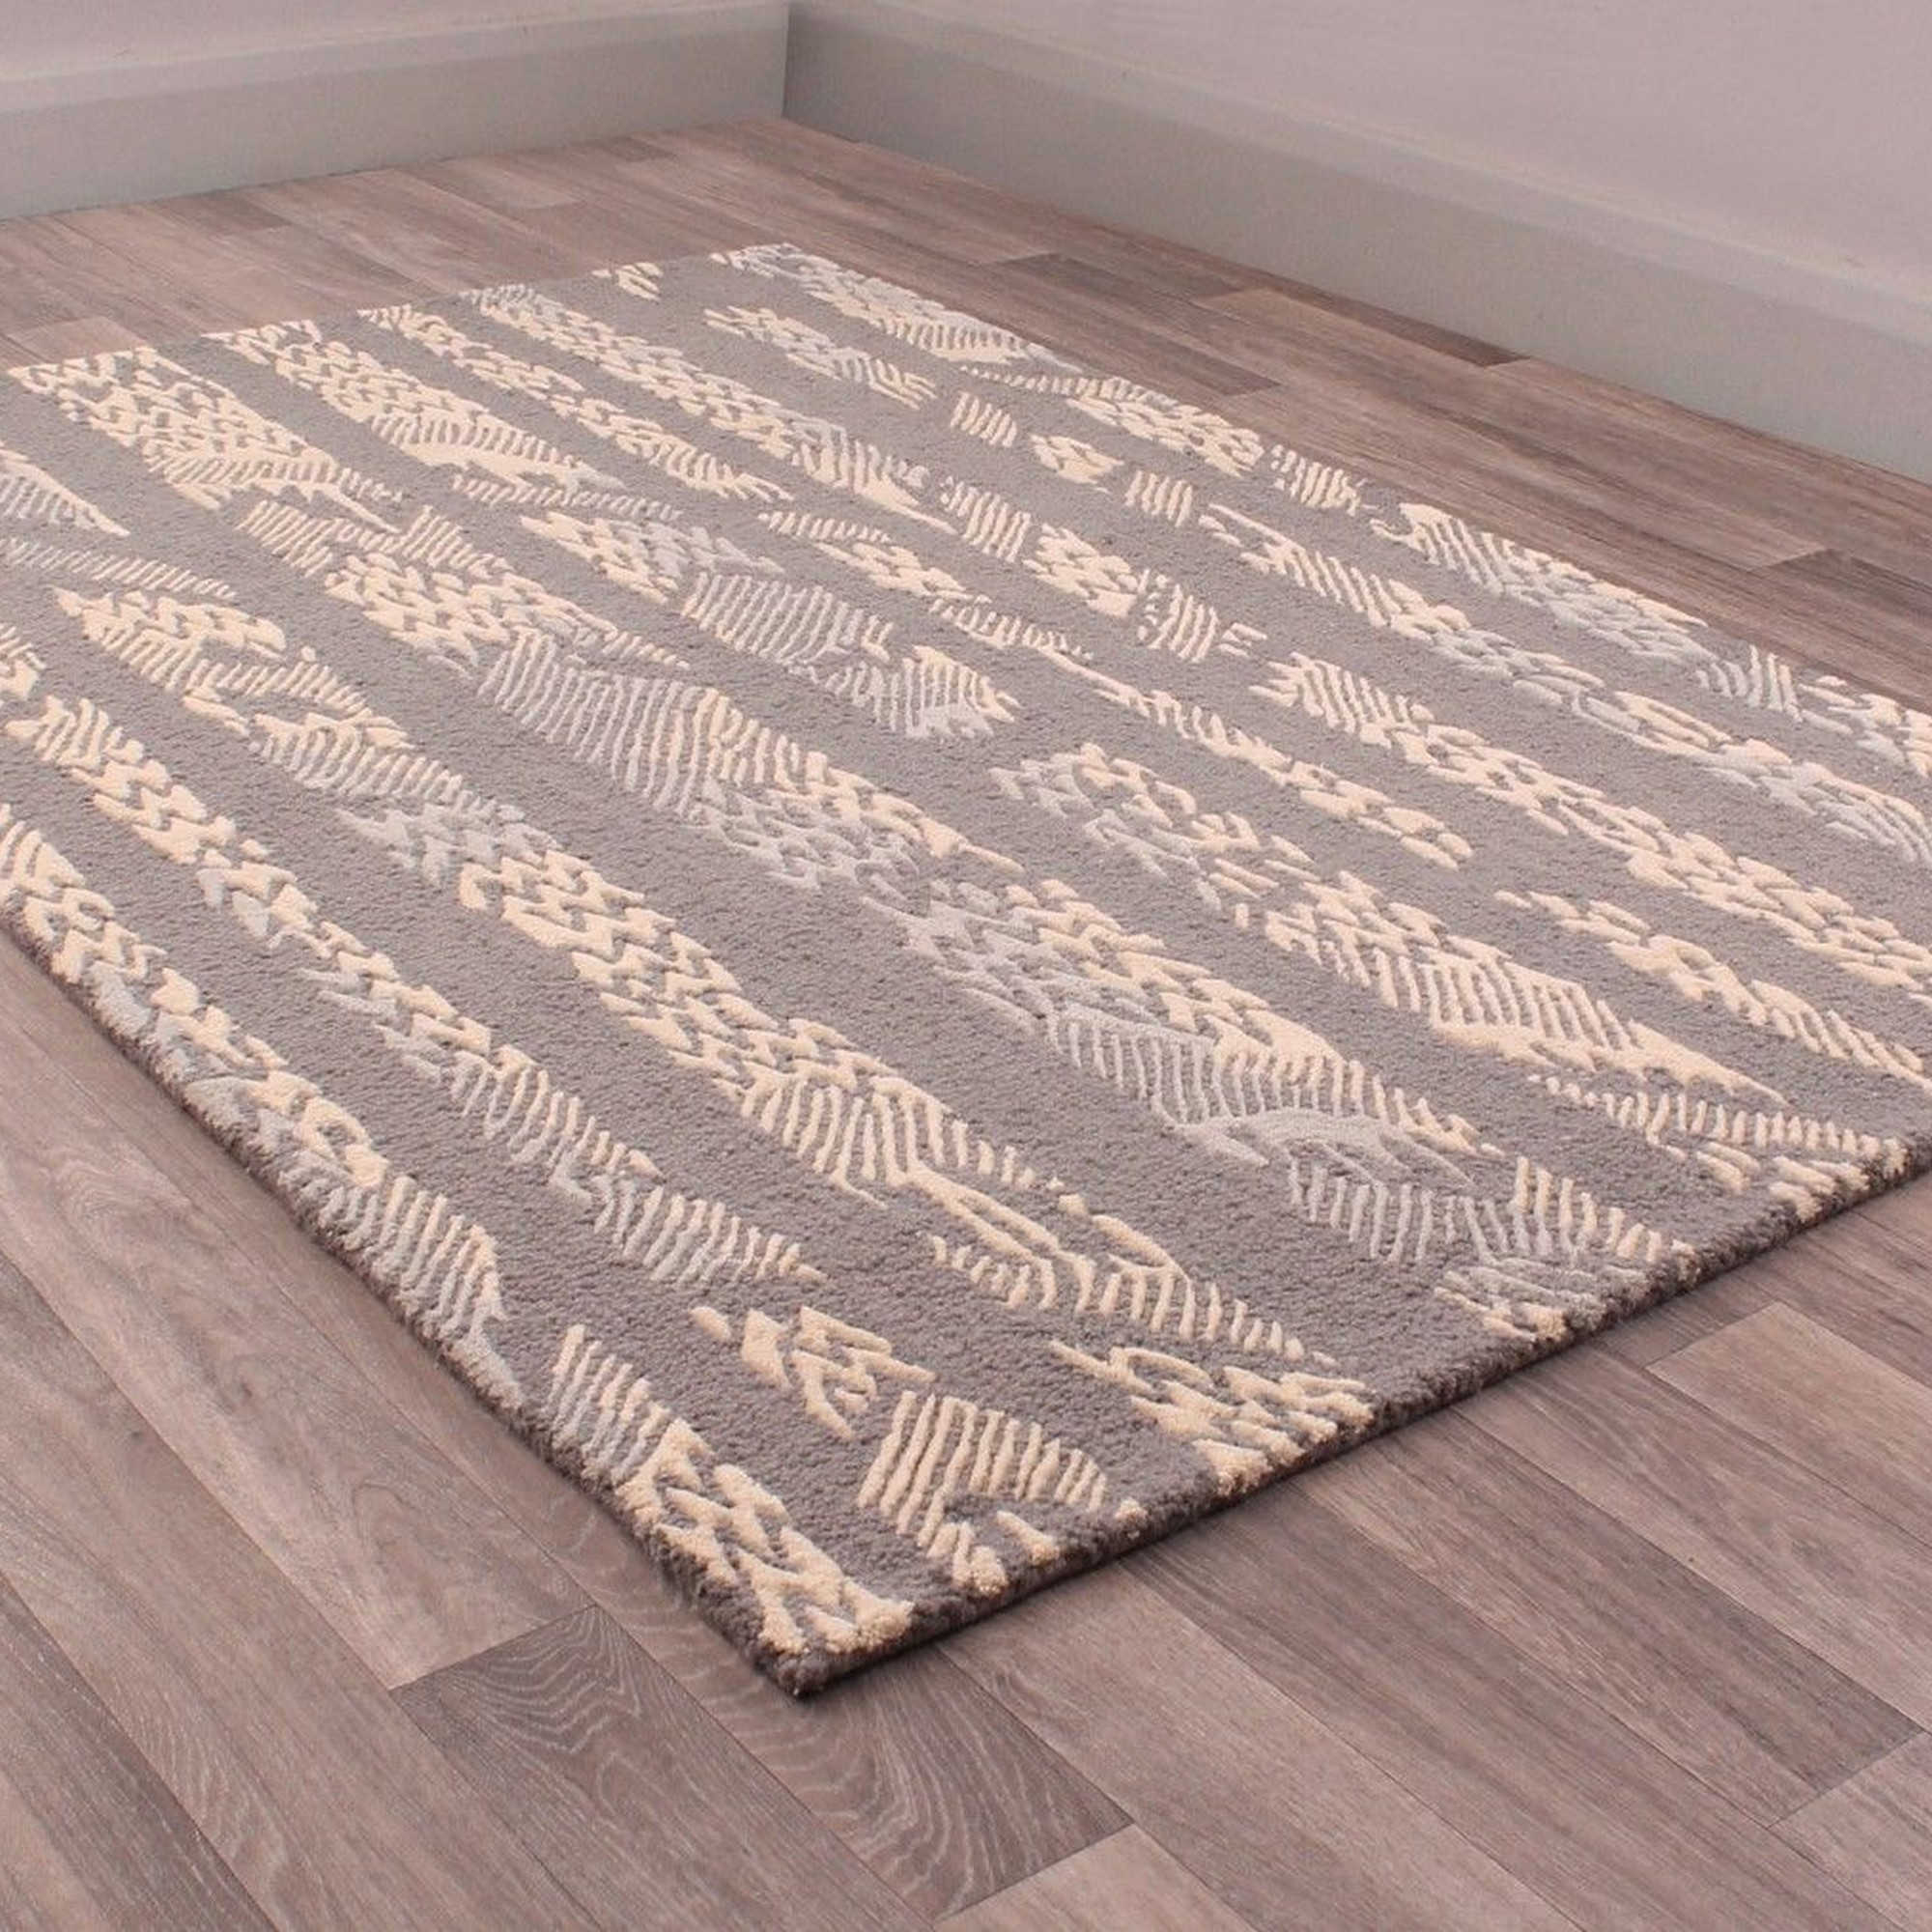 Fusion Bondi Rugs in Brown and Beige